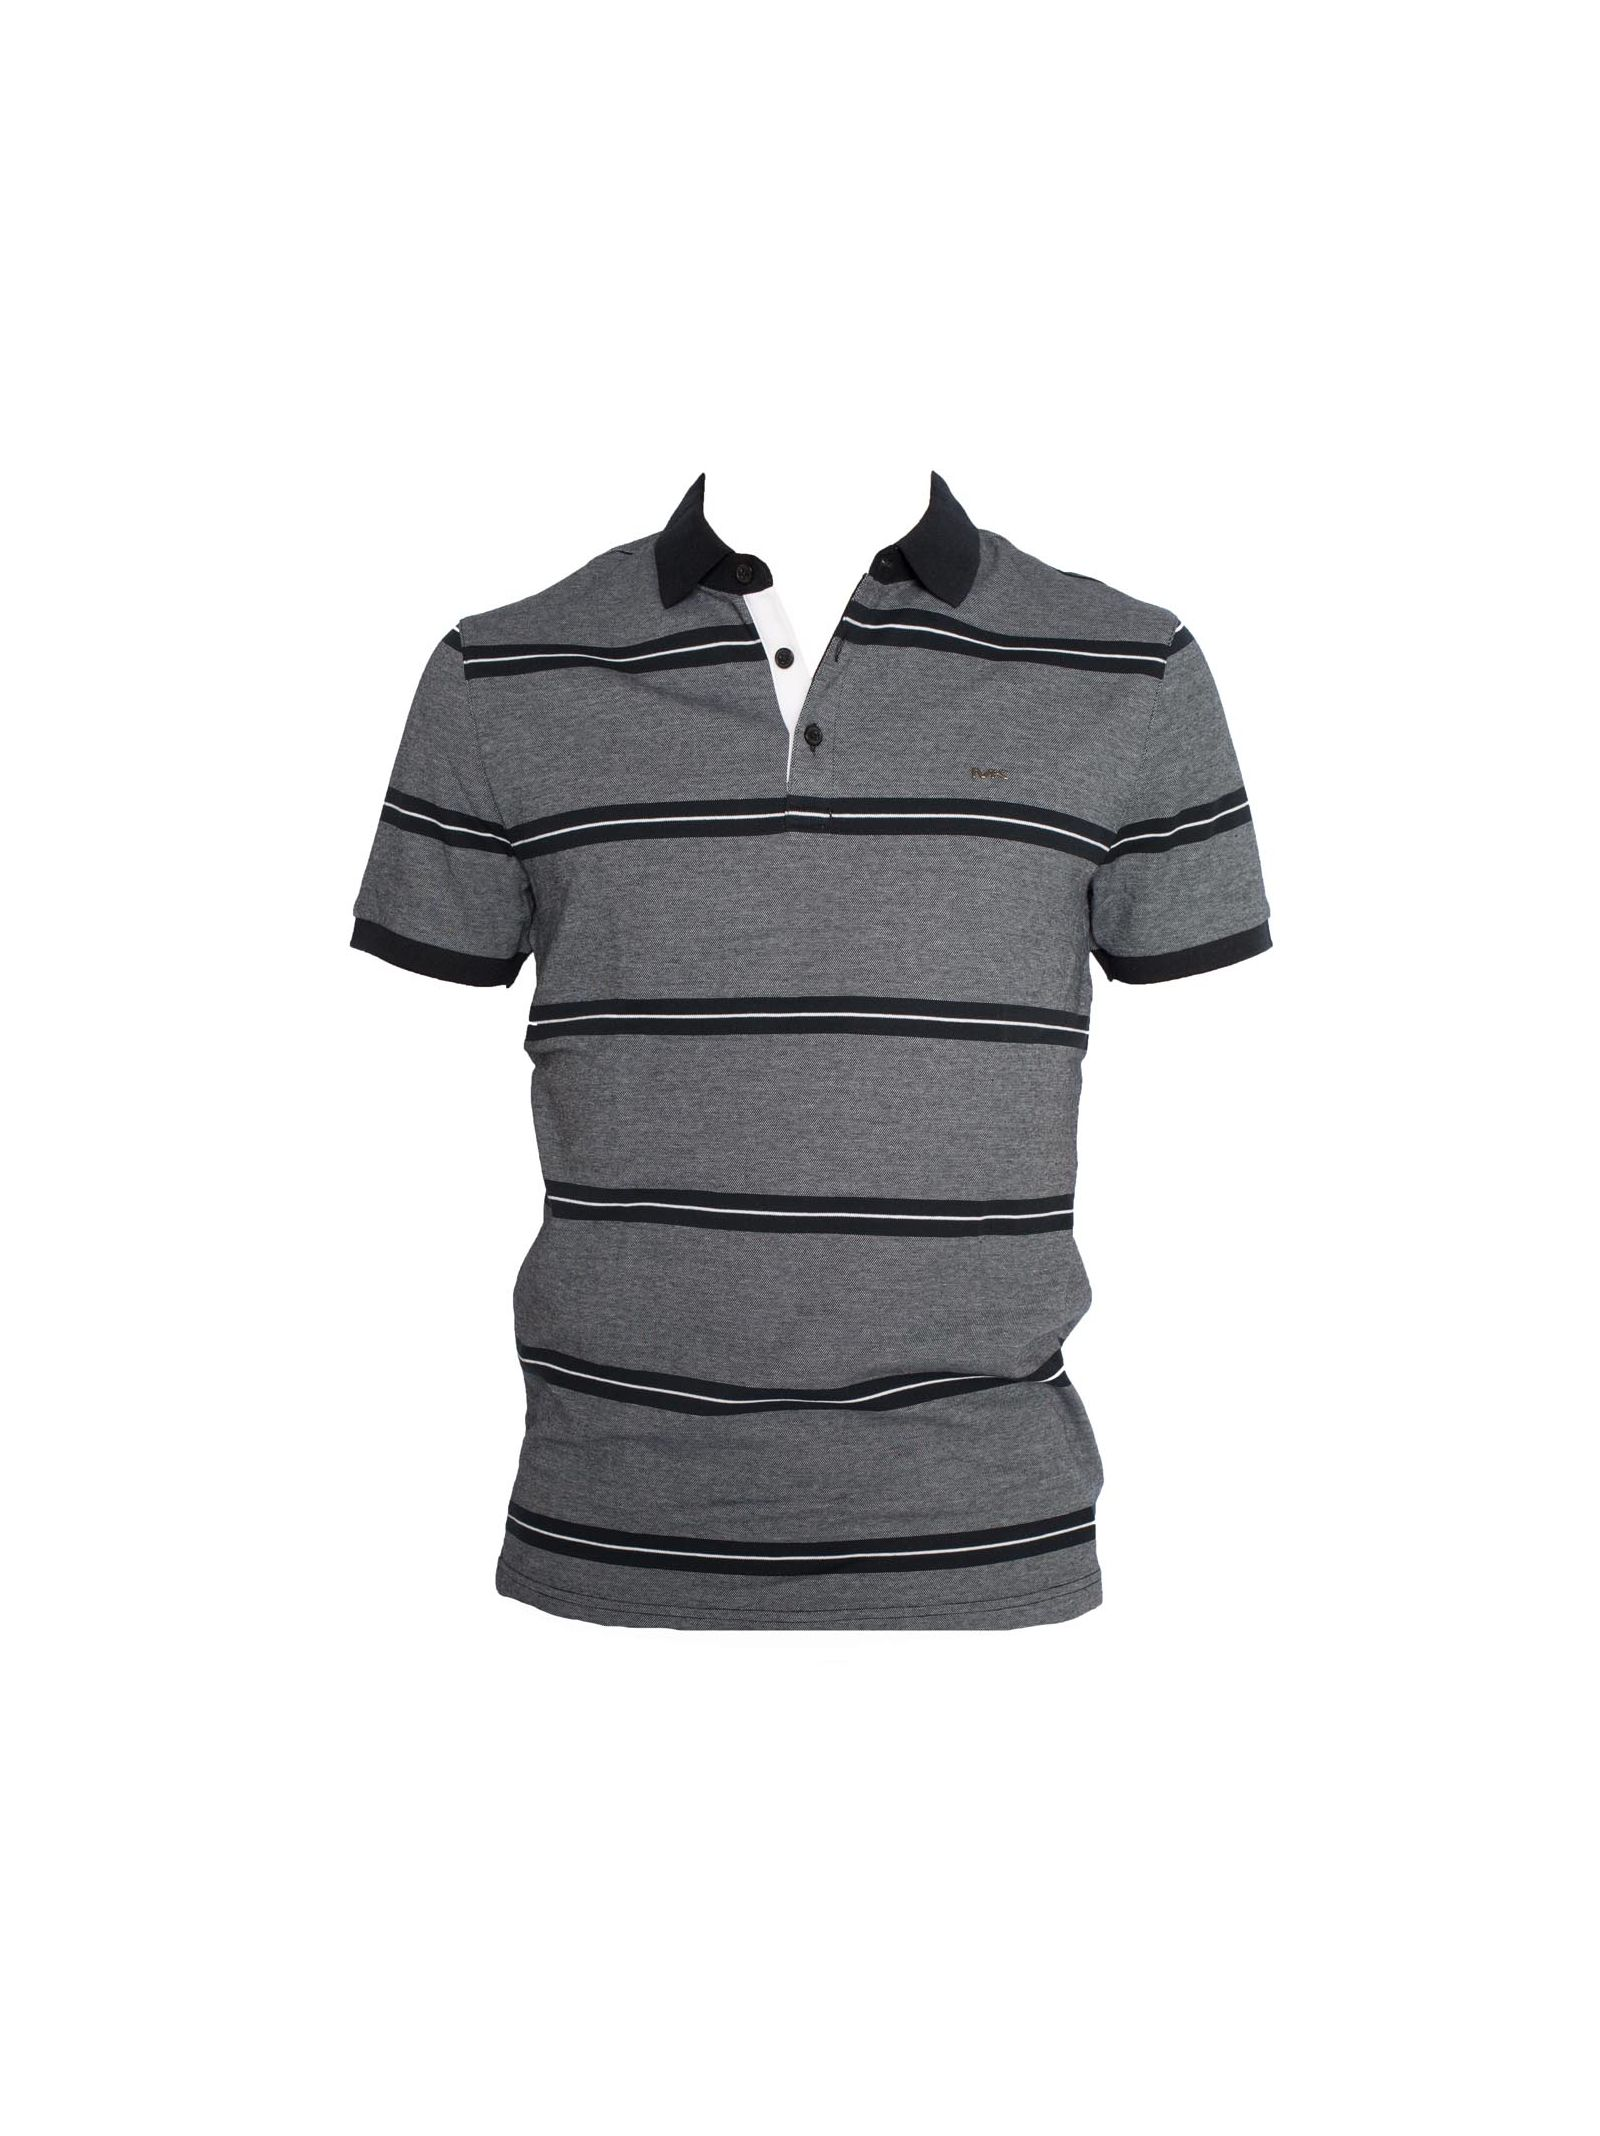 michael kors male  michael kors polo